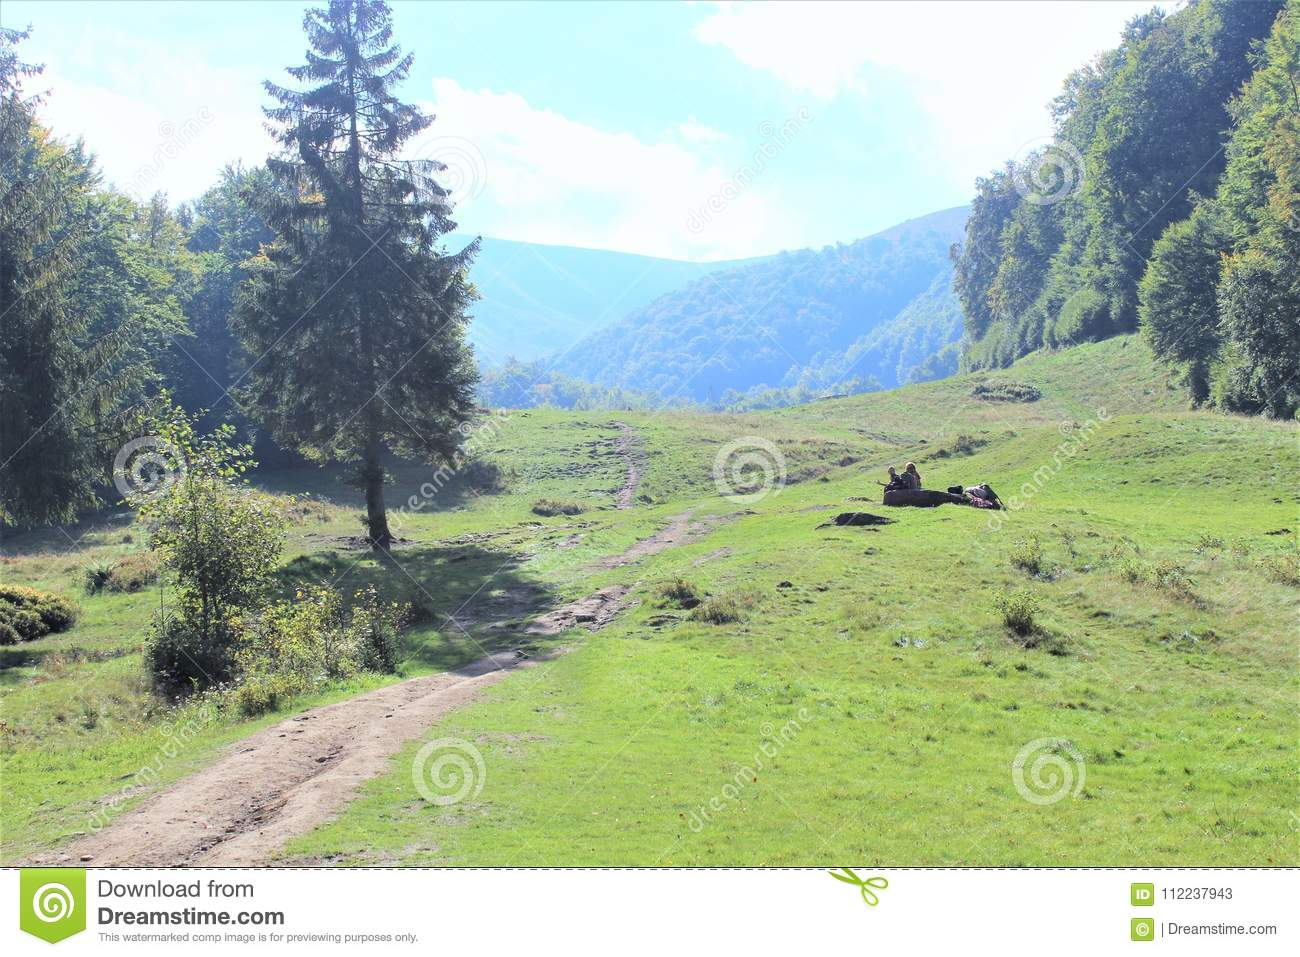 Enjoy your travel with Carpathians mountains, Beauty of the village